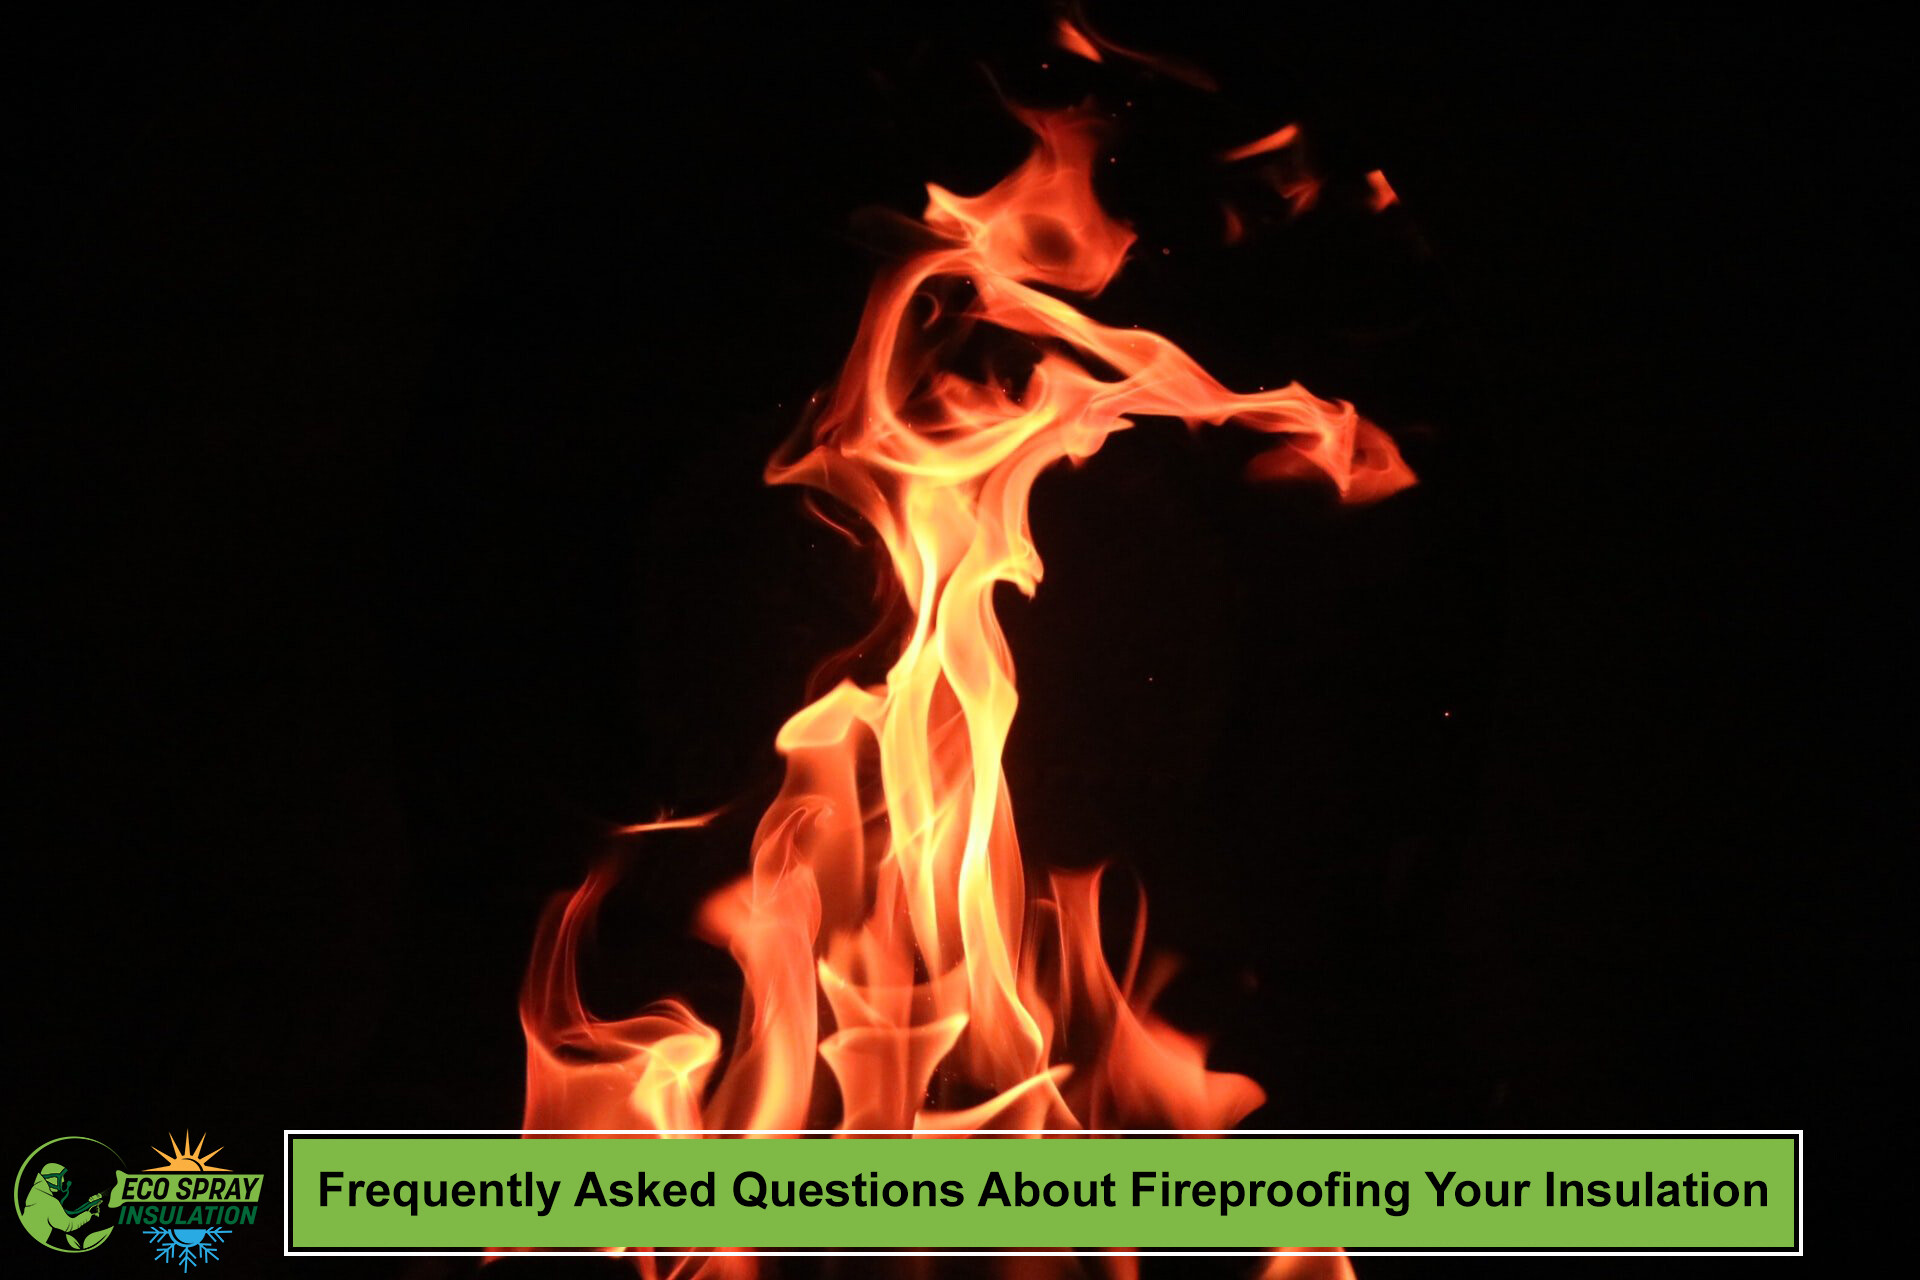 Frequently Asked Questions About Fireproofing Your Insulation